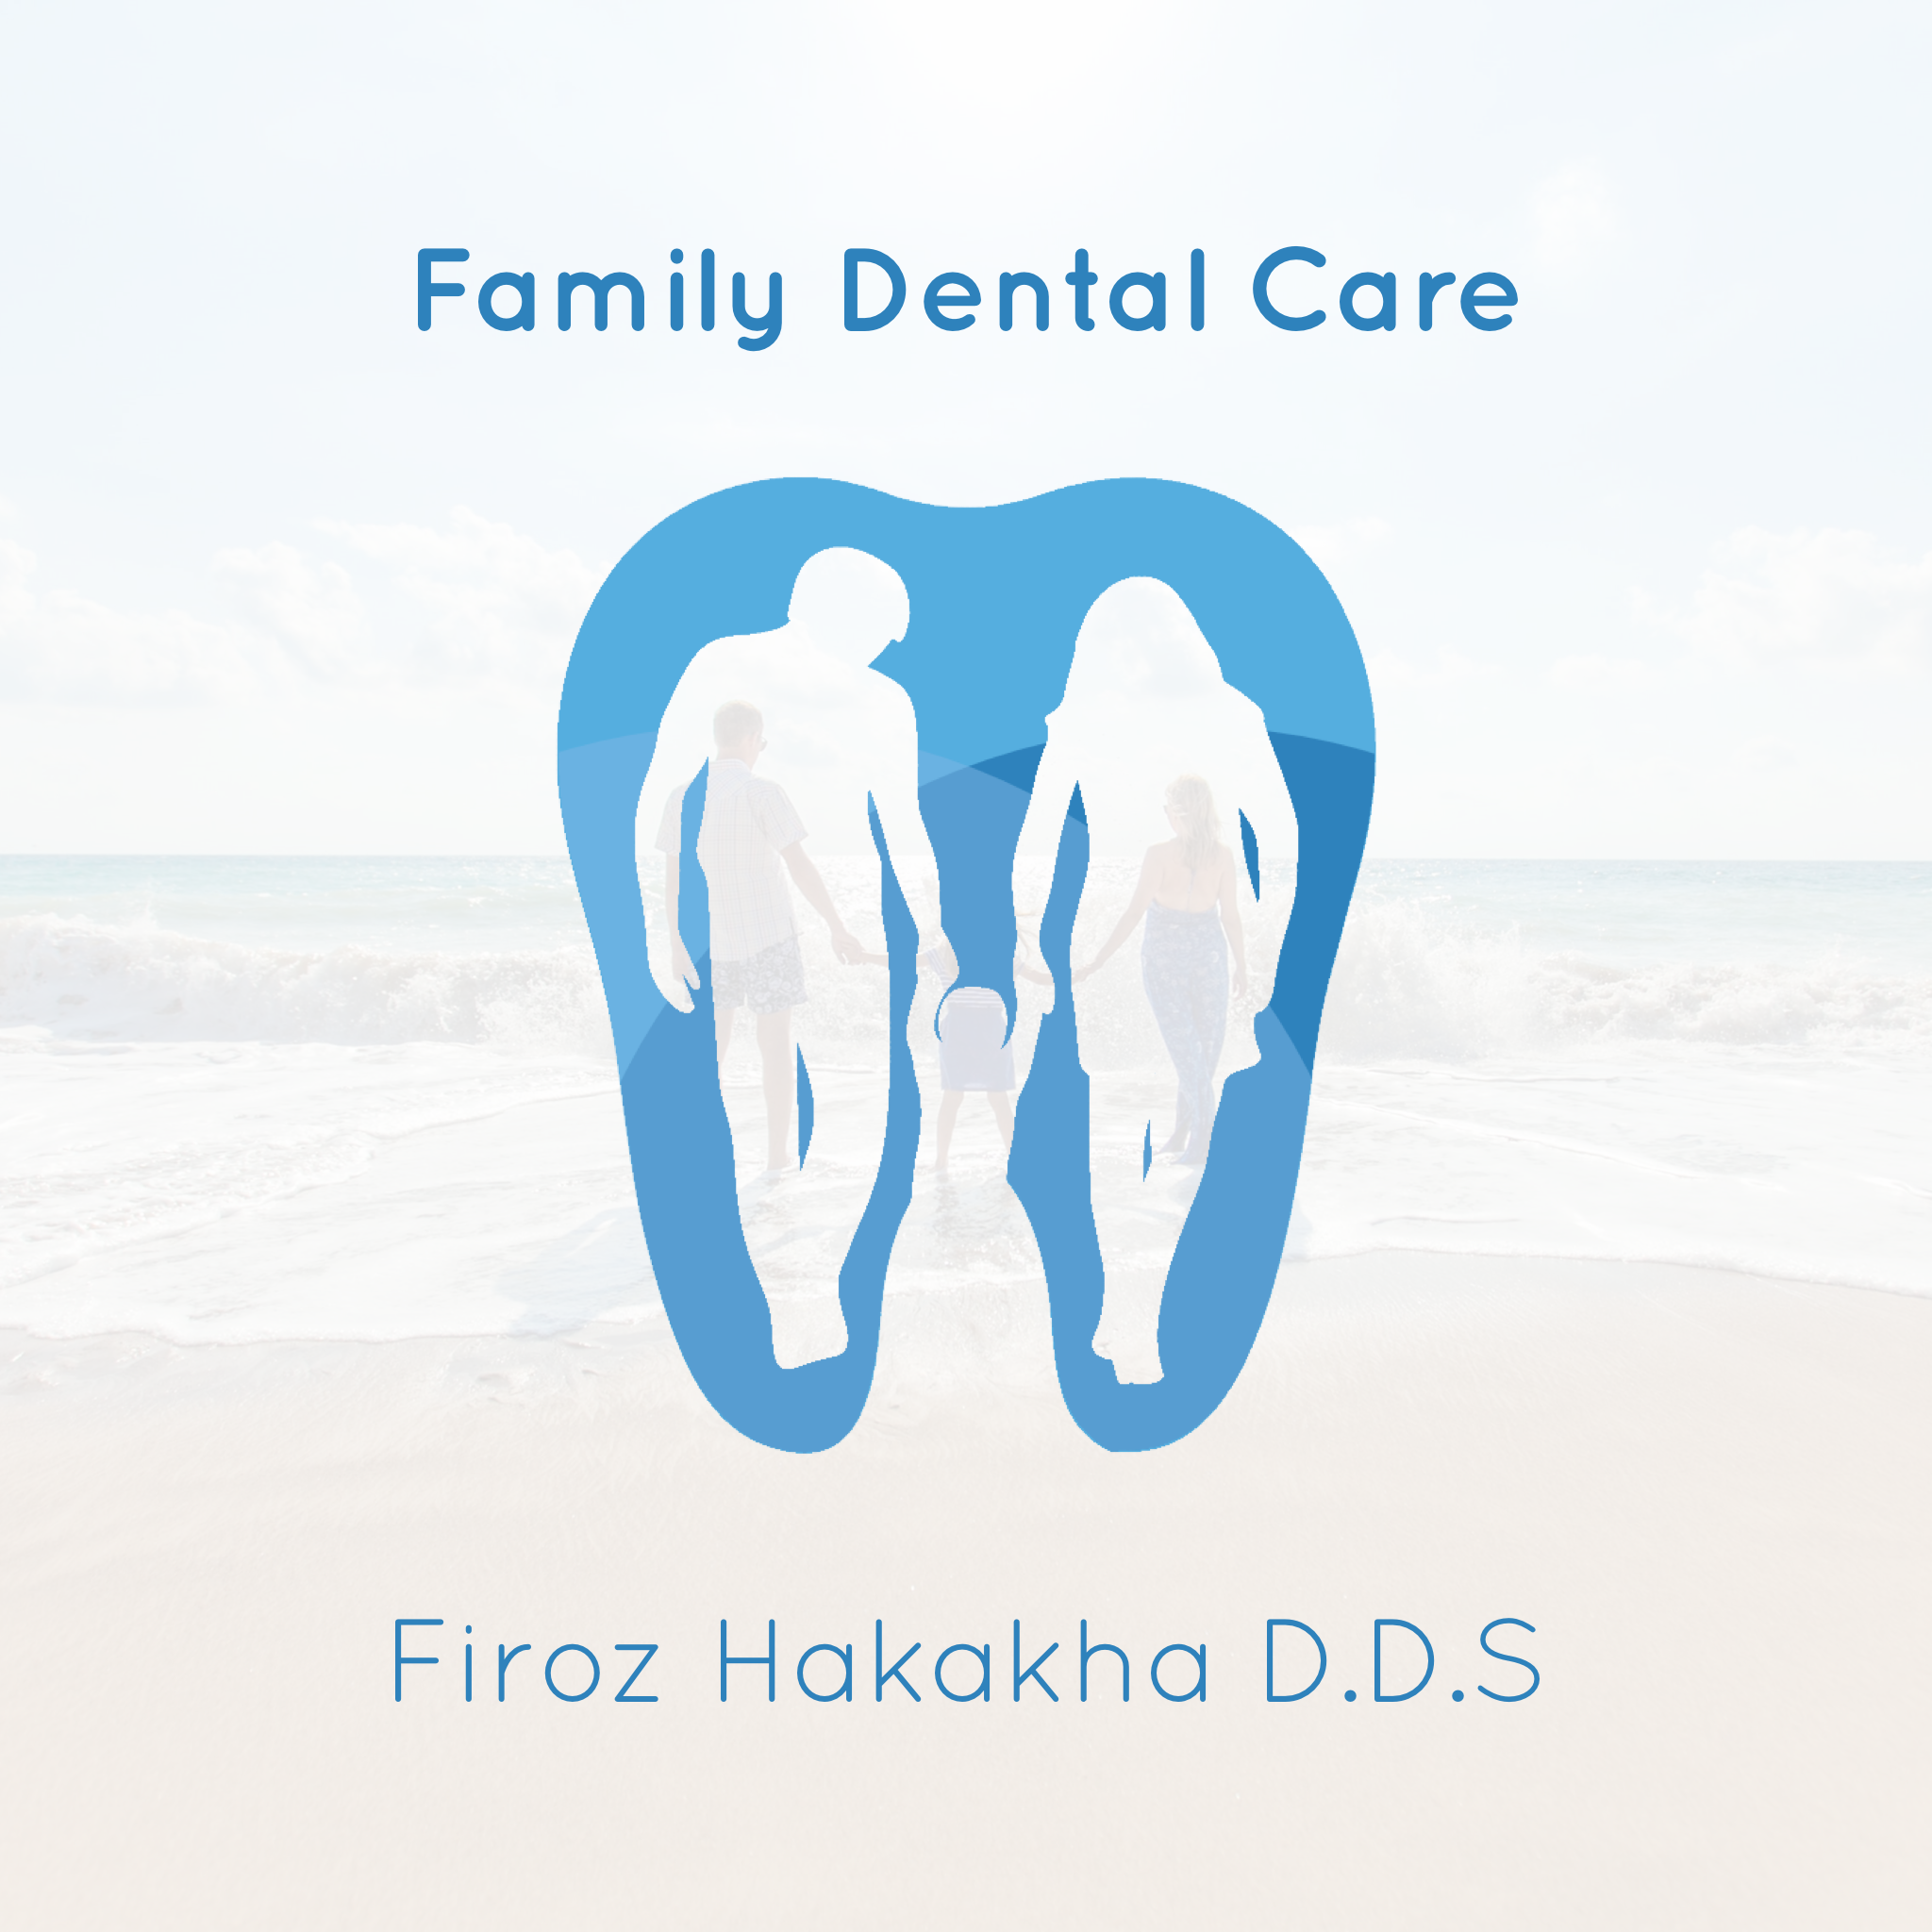 Family Dental Care/Firoz Hakakha DDS incorporated